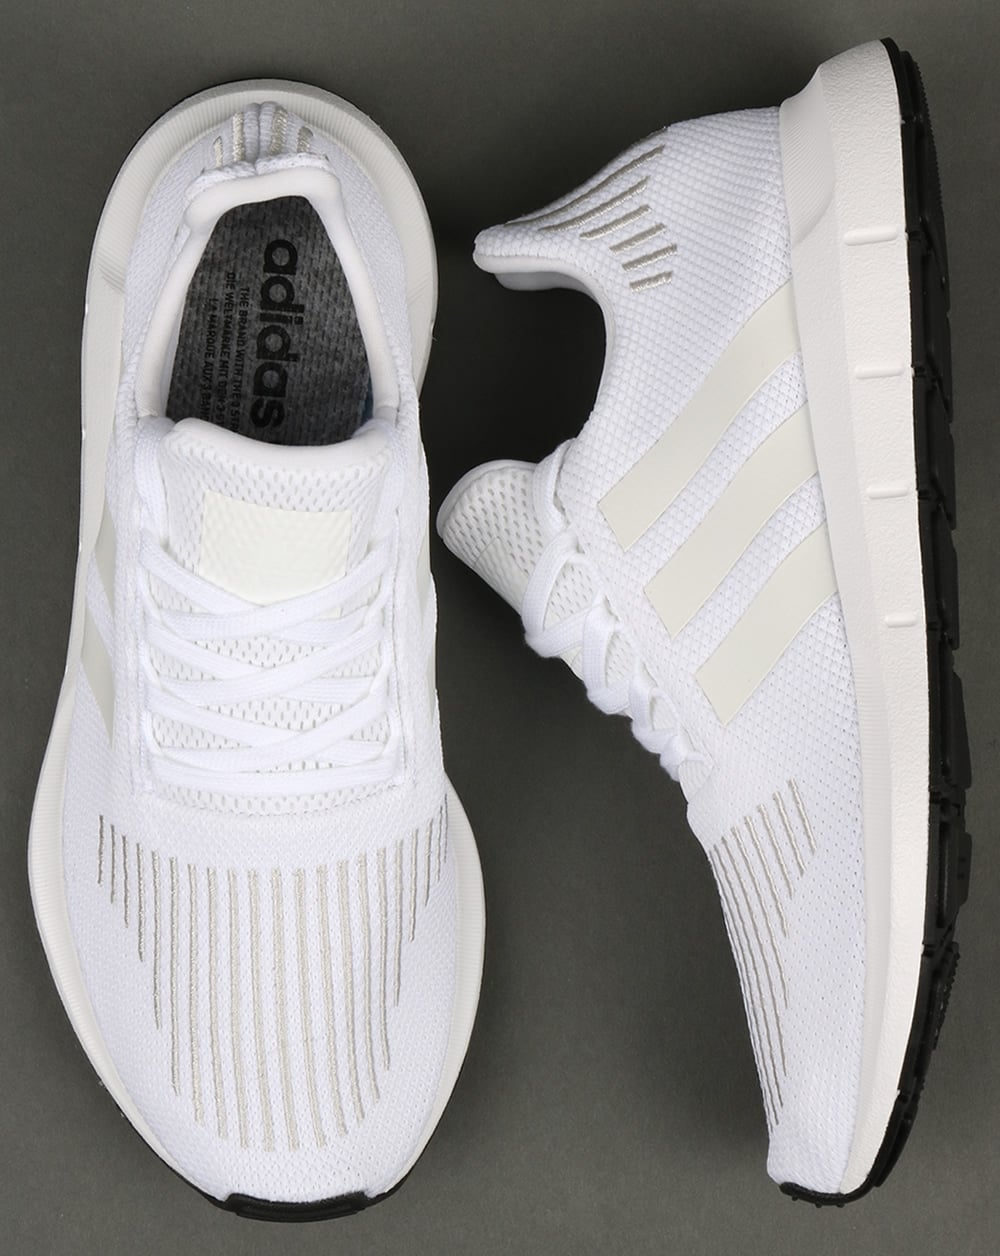 adidas swift run trainers white shoes running prime knit